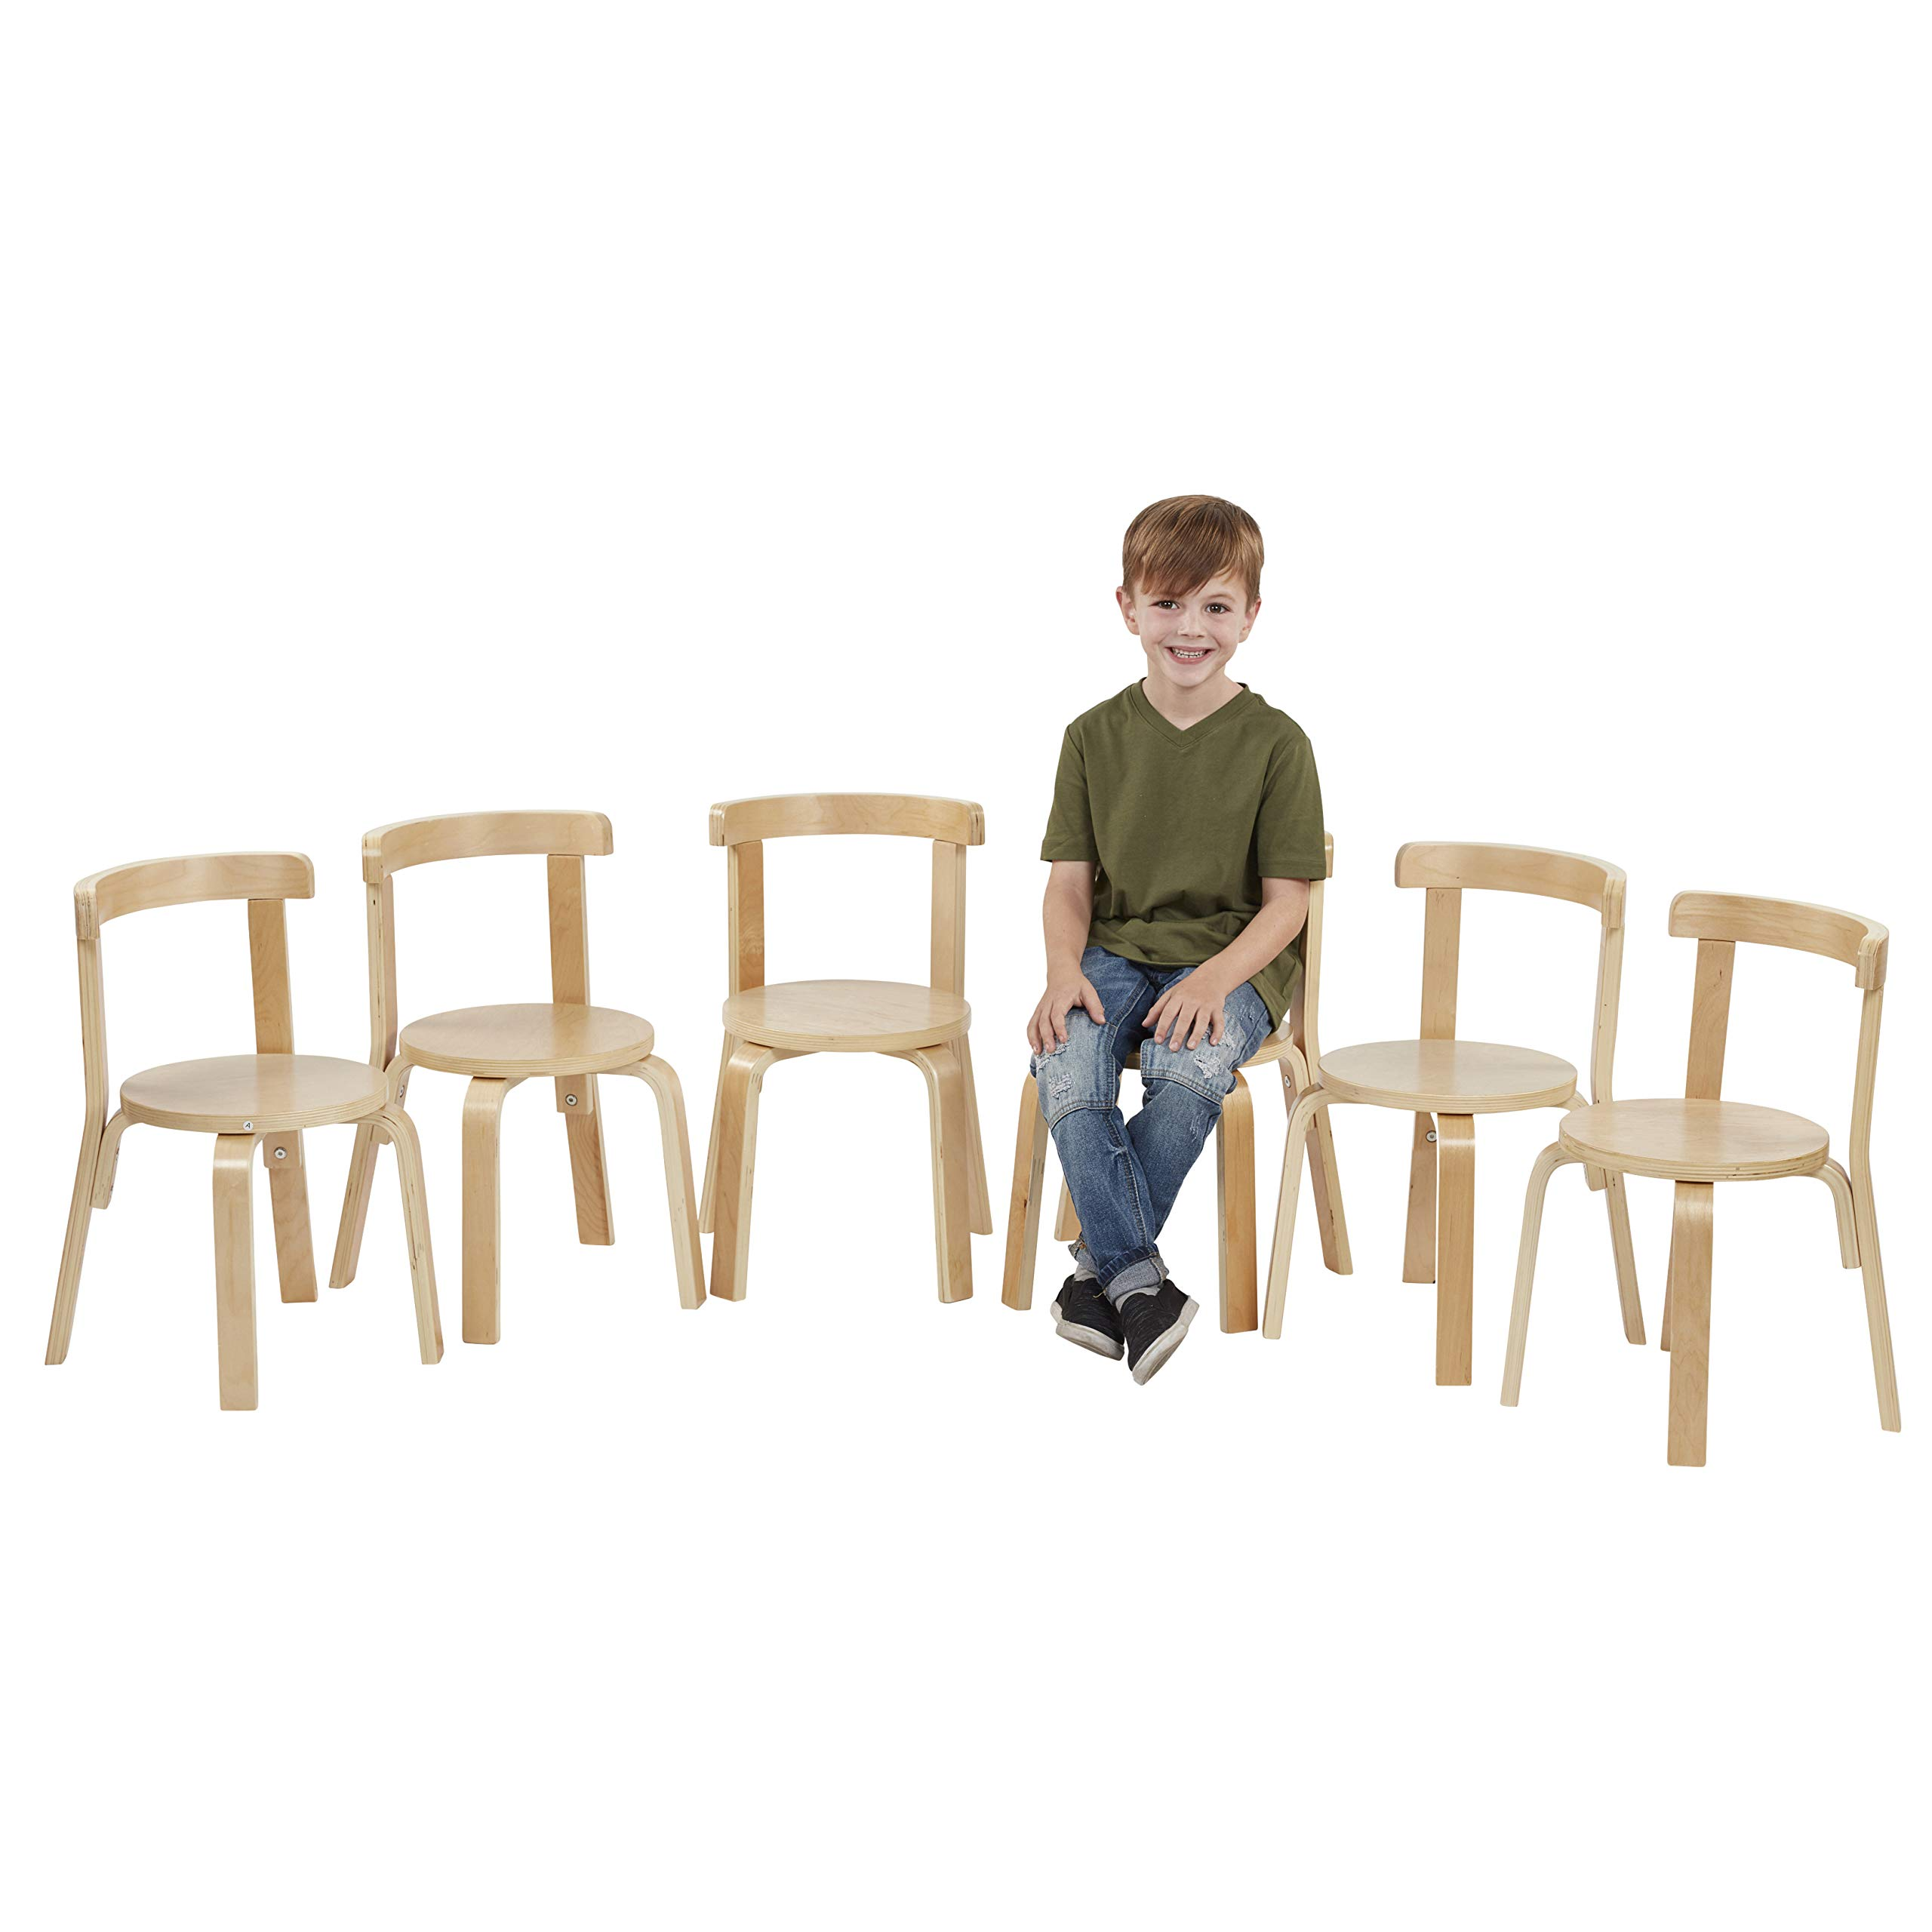 ECR4Kids Bentwood Curved Back Chair 6-Pack, Sturdy Backed Stools for Kids and Toddlers, Natural (Set of 6) by ECR4Kids